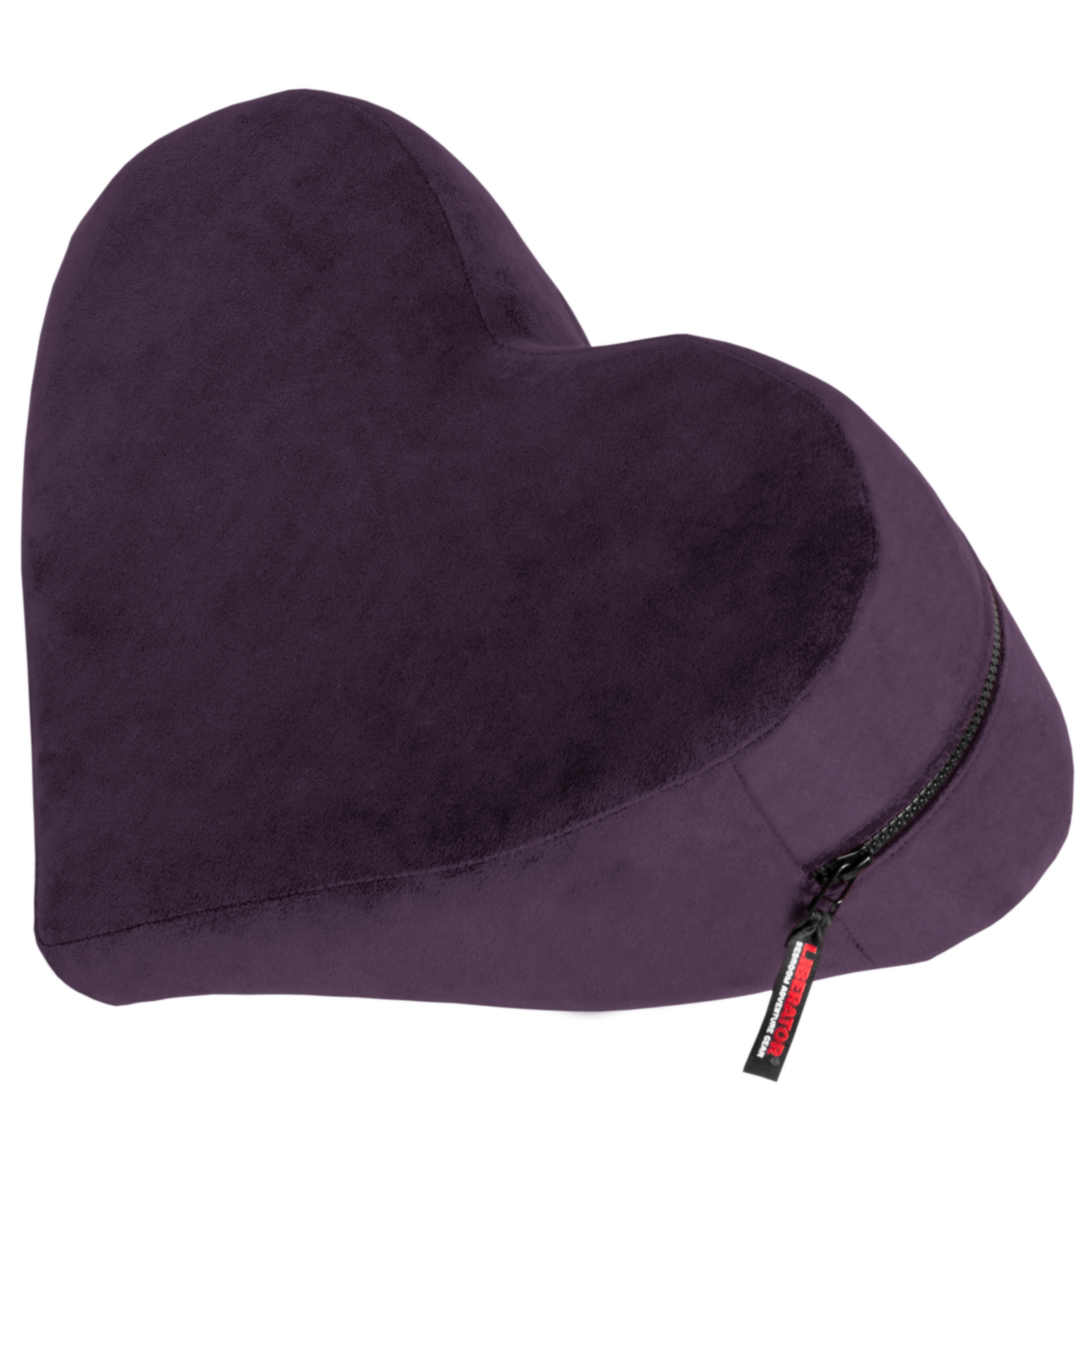 Liberator Decor Heart Wedge Sex Positioning Cushion - Assorted Colors plum